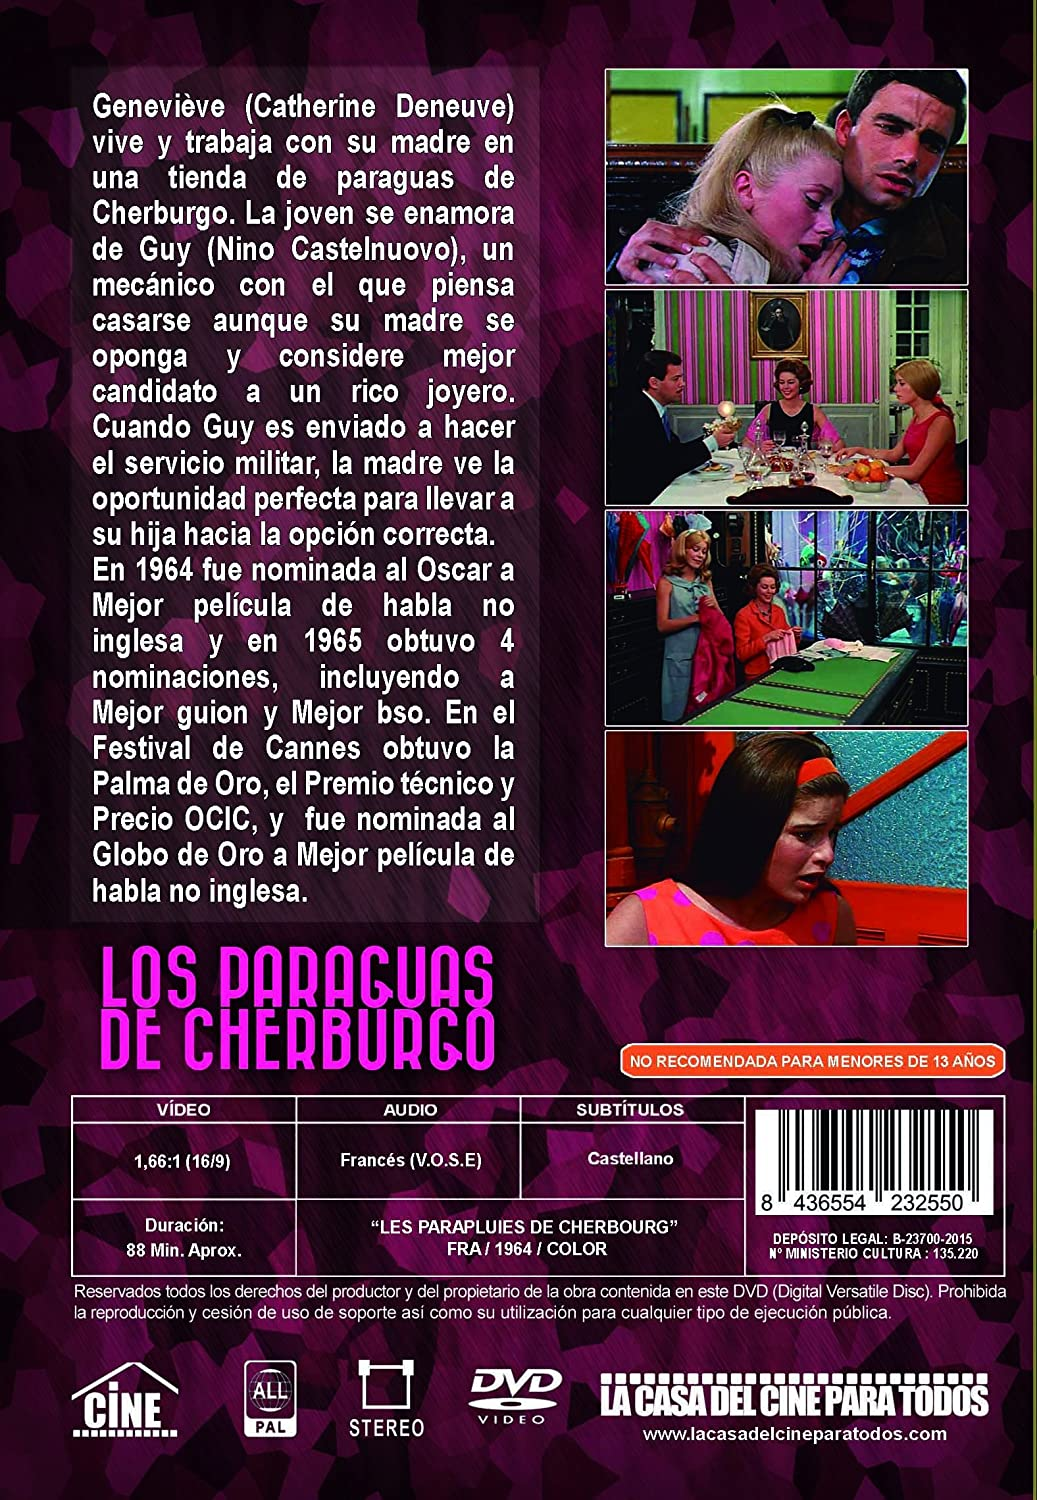 Amazon.com: Los paraguas de Cherburgo (les Parapluies de Cherbourg) 1964 - Import - All Regions: Movies & TV